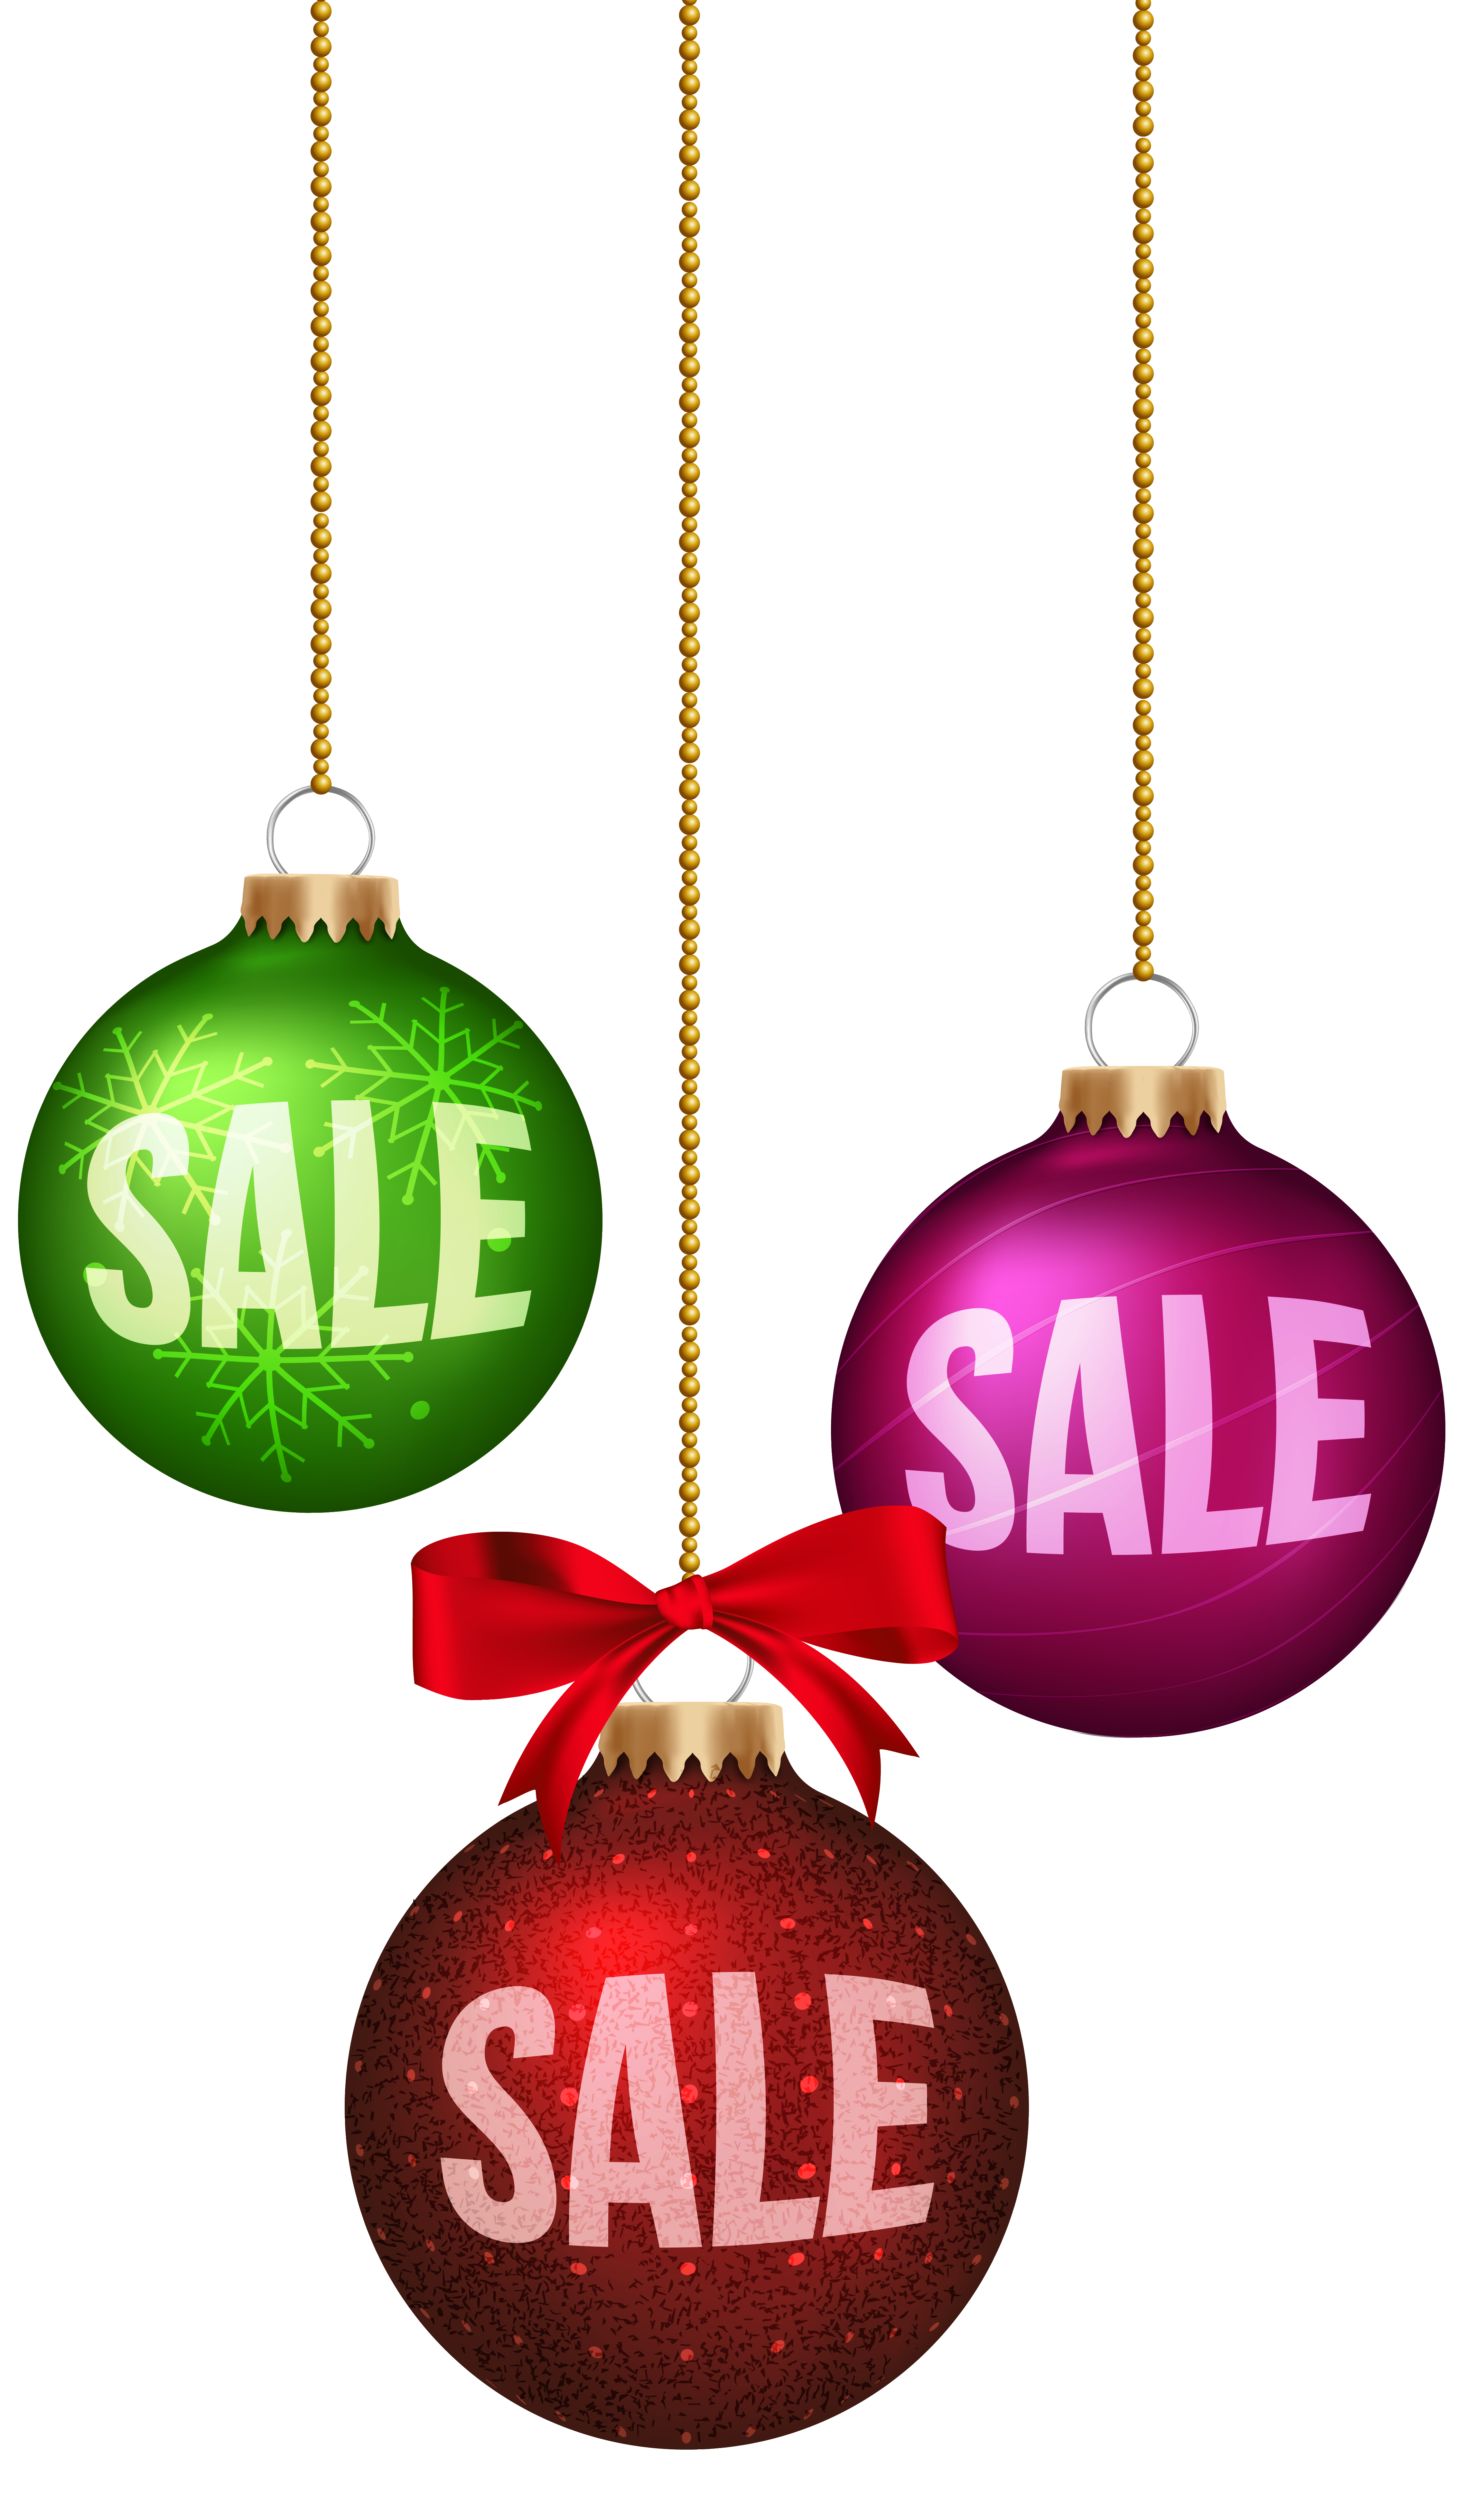 Christmas sale clipart graphic royalty free stock Christmas Balls Sale Decoration PNG Clip Art Image | Gallery ... graphic royalty free stock